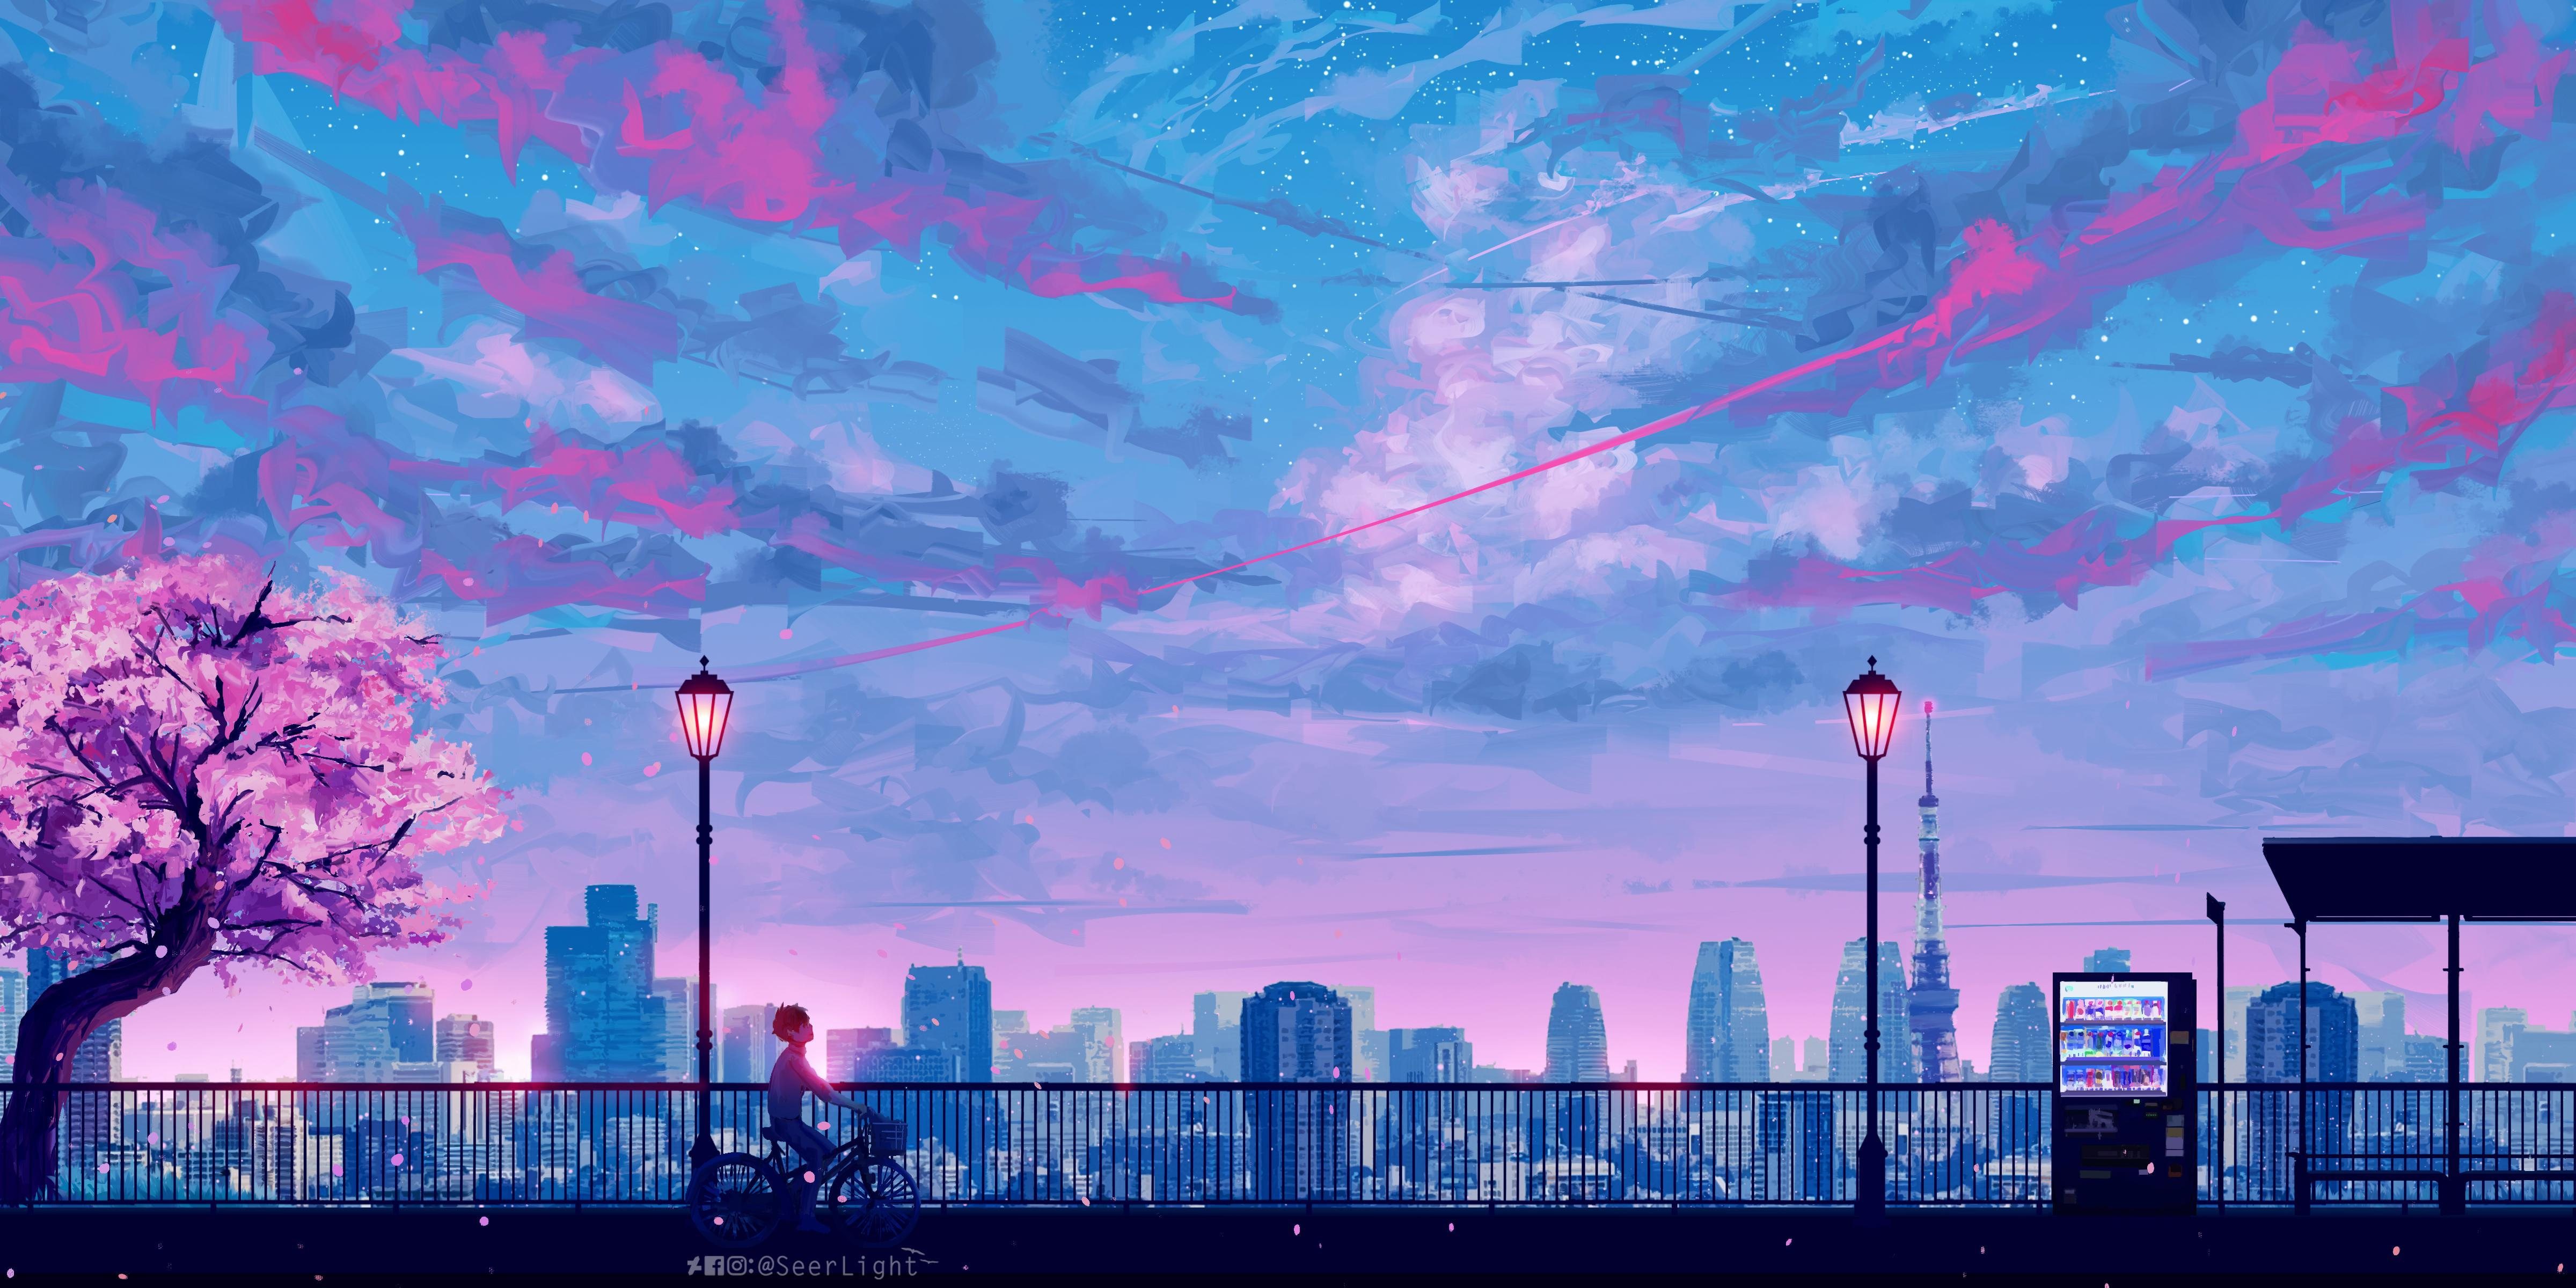 90s Anime Aesthetic Laptop Wallpapers 4800x2400